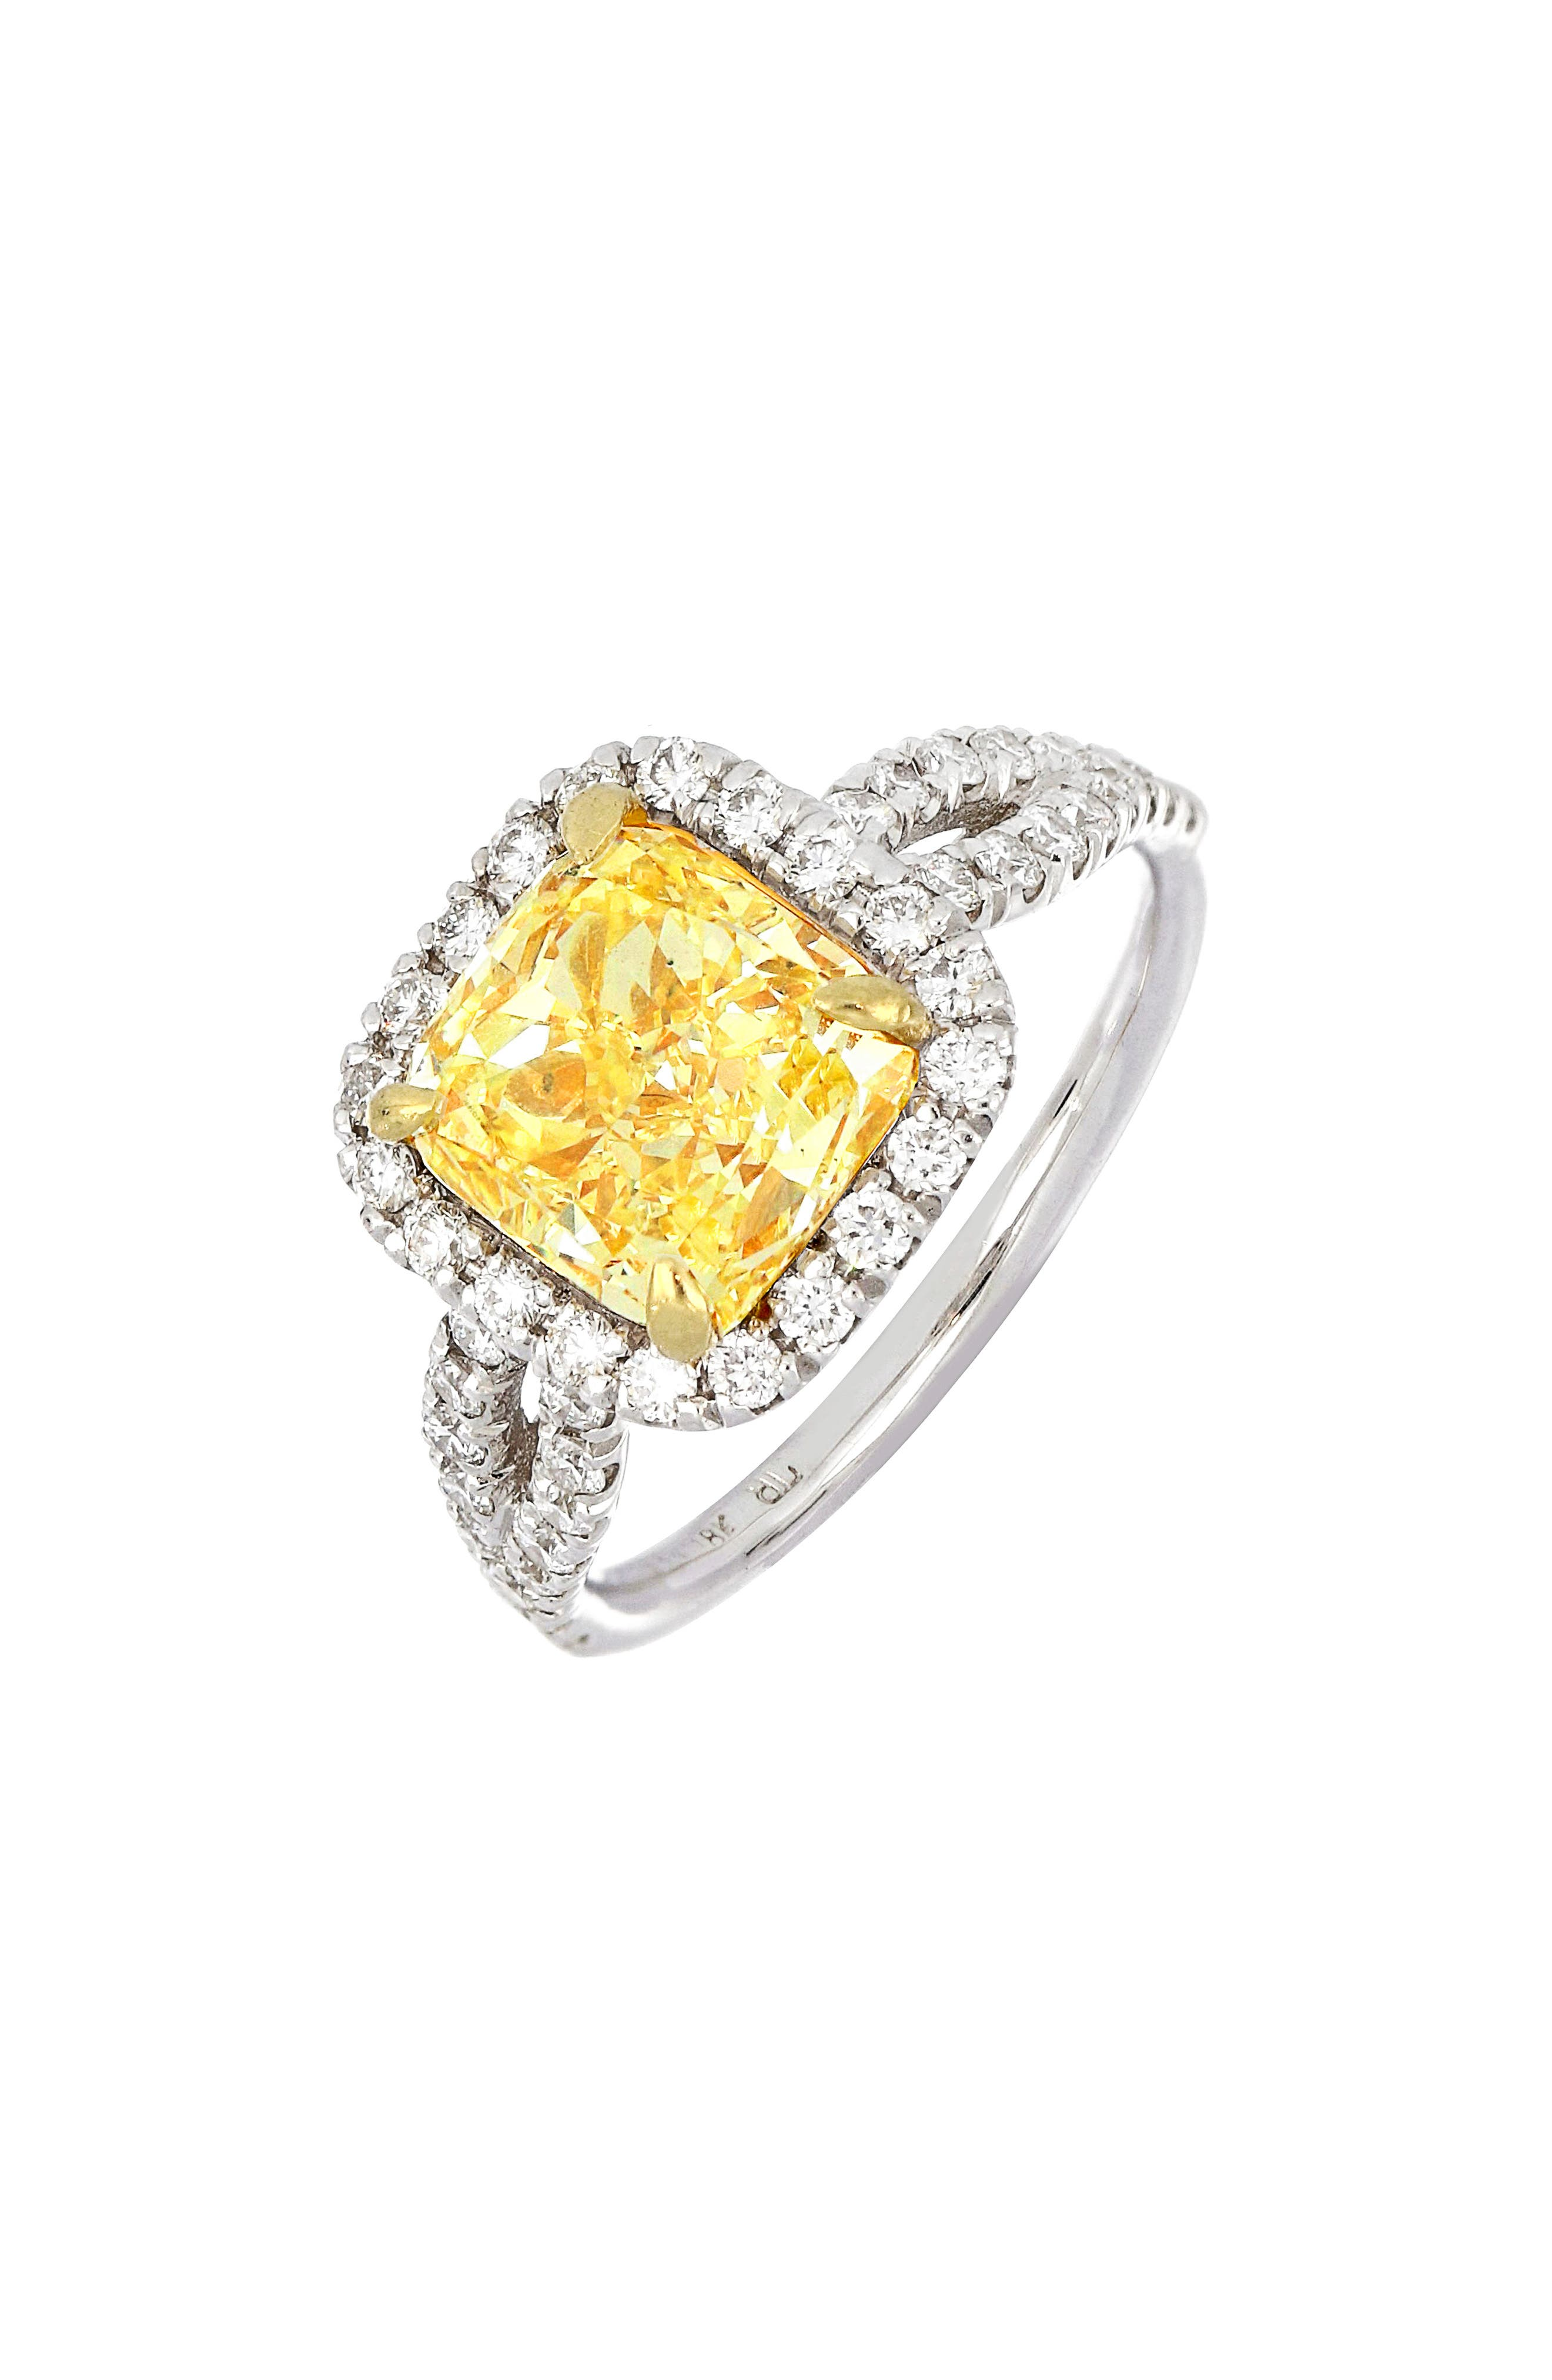 Yellow-gold prongs clutch a cushion-cut diamond in a sunny shade of yellow on this handcrafted ring with a pave-diamond halo and split shank. Style Name: Bony Levy Cushion Yellow Diamond Halo Ring (Nordstrom Exclusive). Style Number: 6061587. Available in stores.